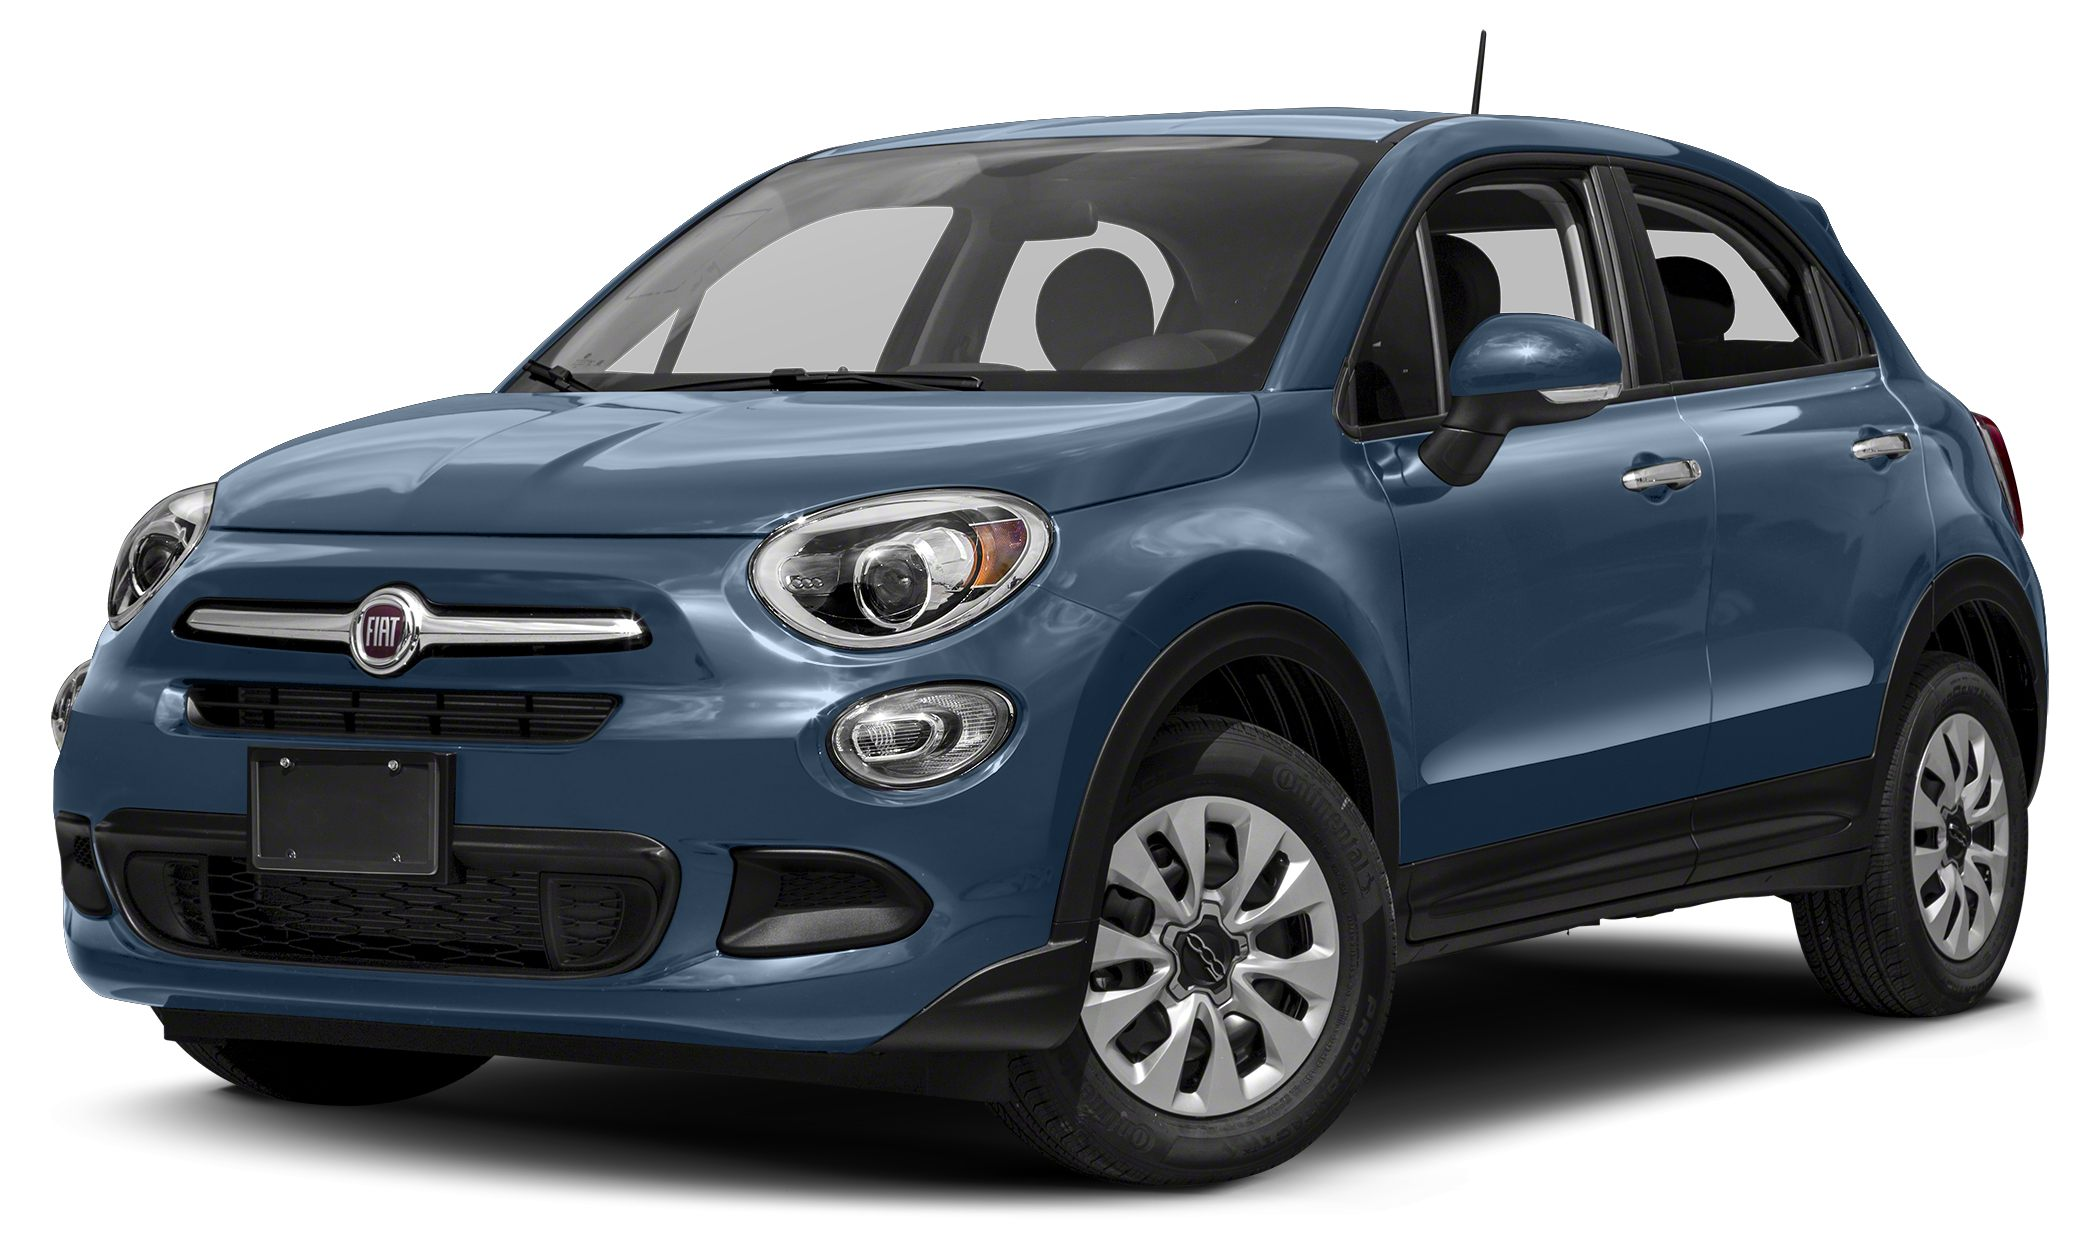 2016 FIAT 500X Easy Call for Details on the New 500X Miles 0Color Verde Toscana Green Metallic